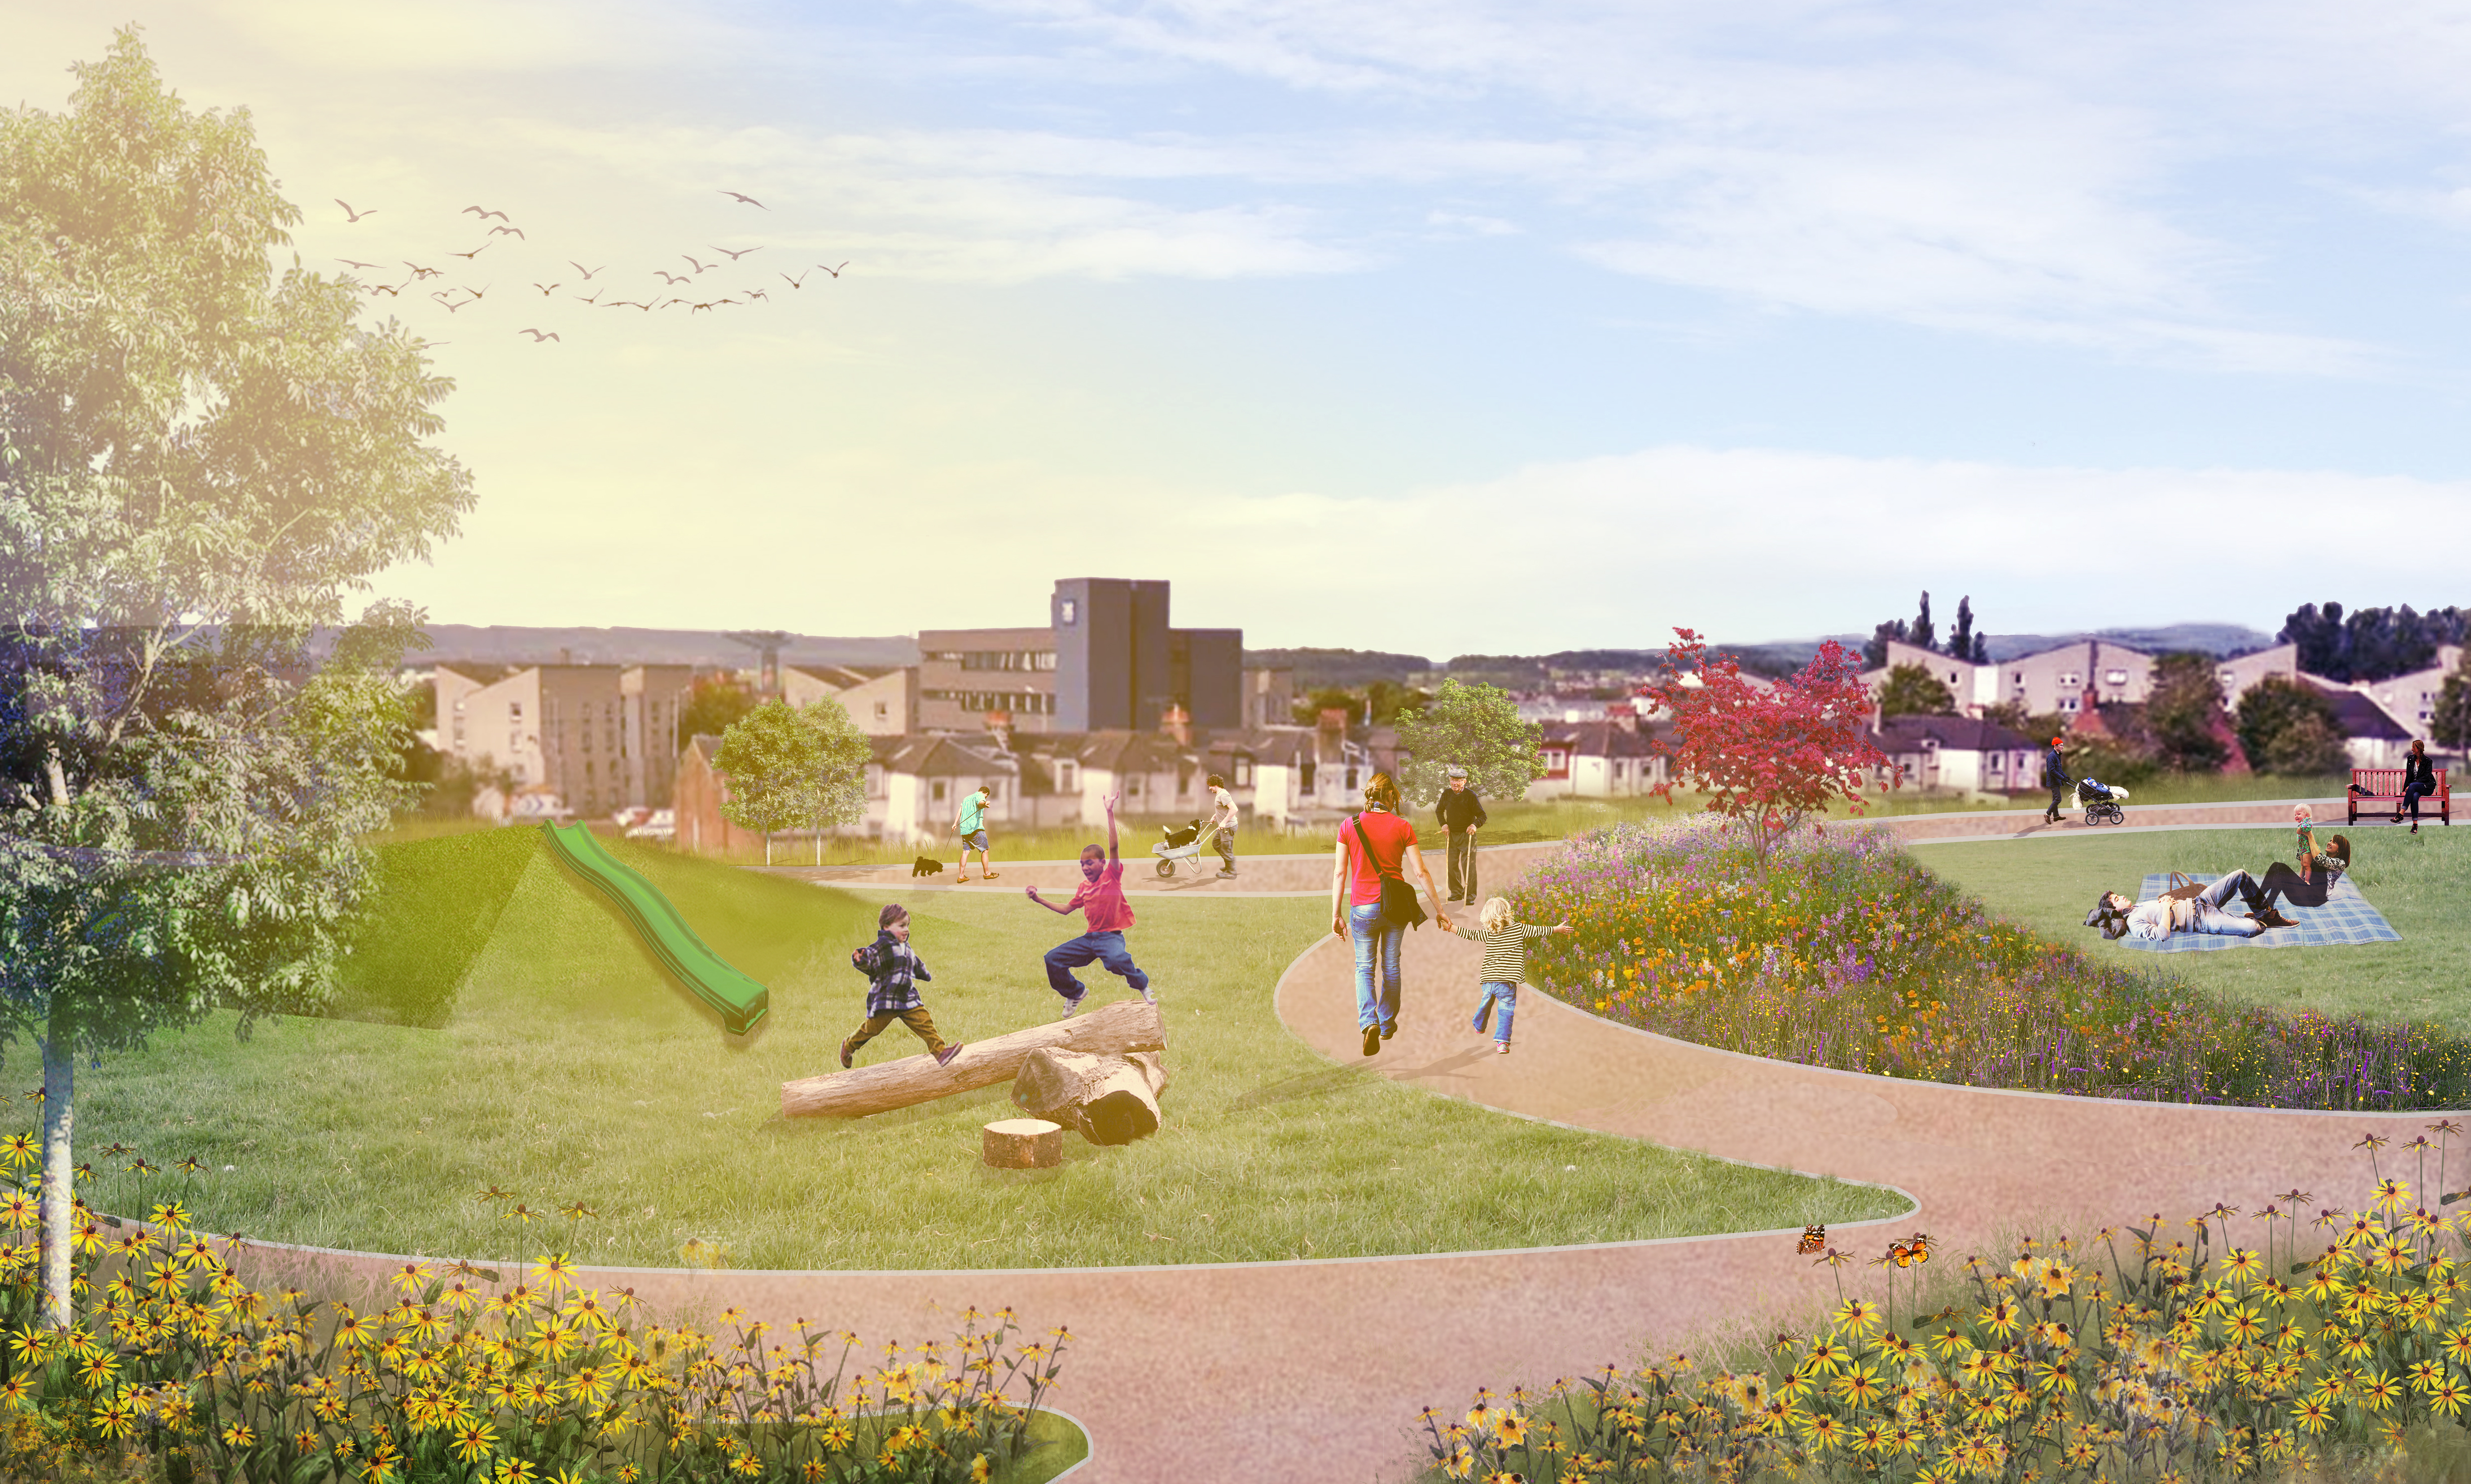 Melfort Park - Artist impression of new community green space being developed in Clydebank